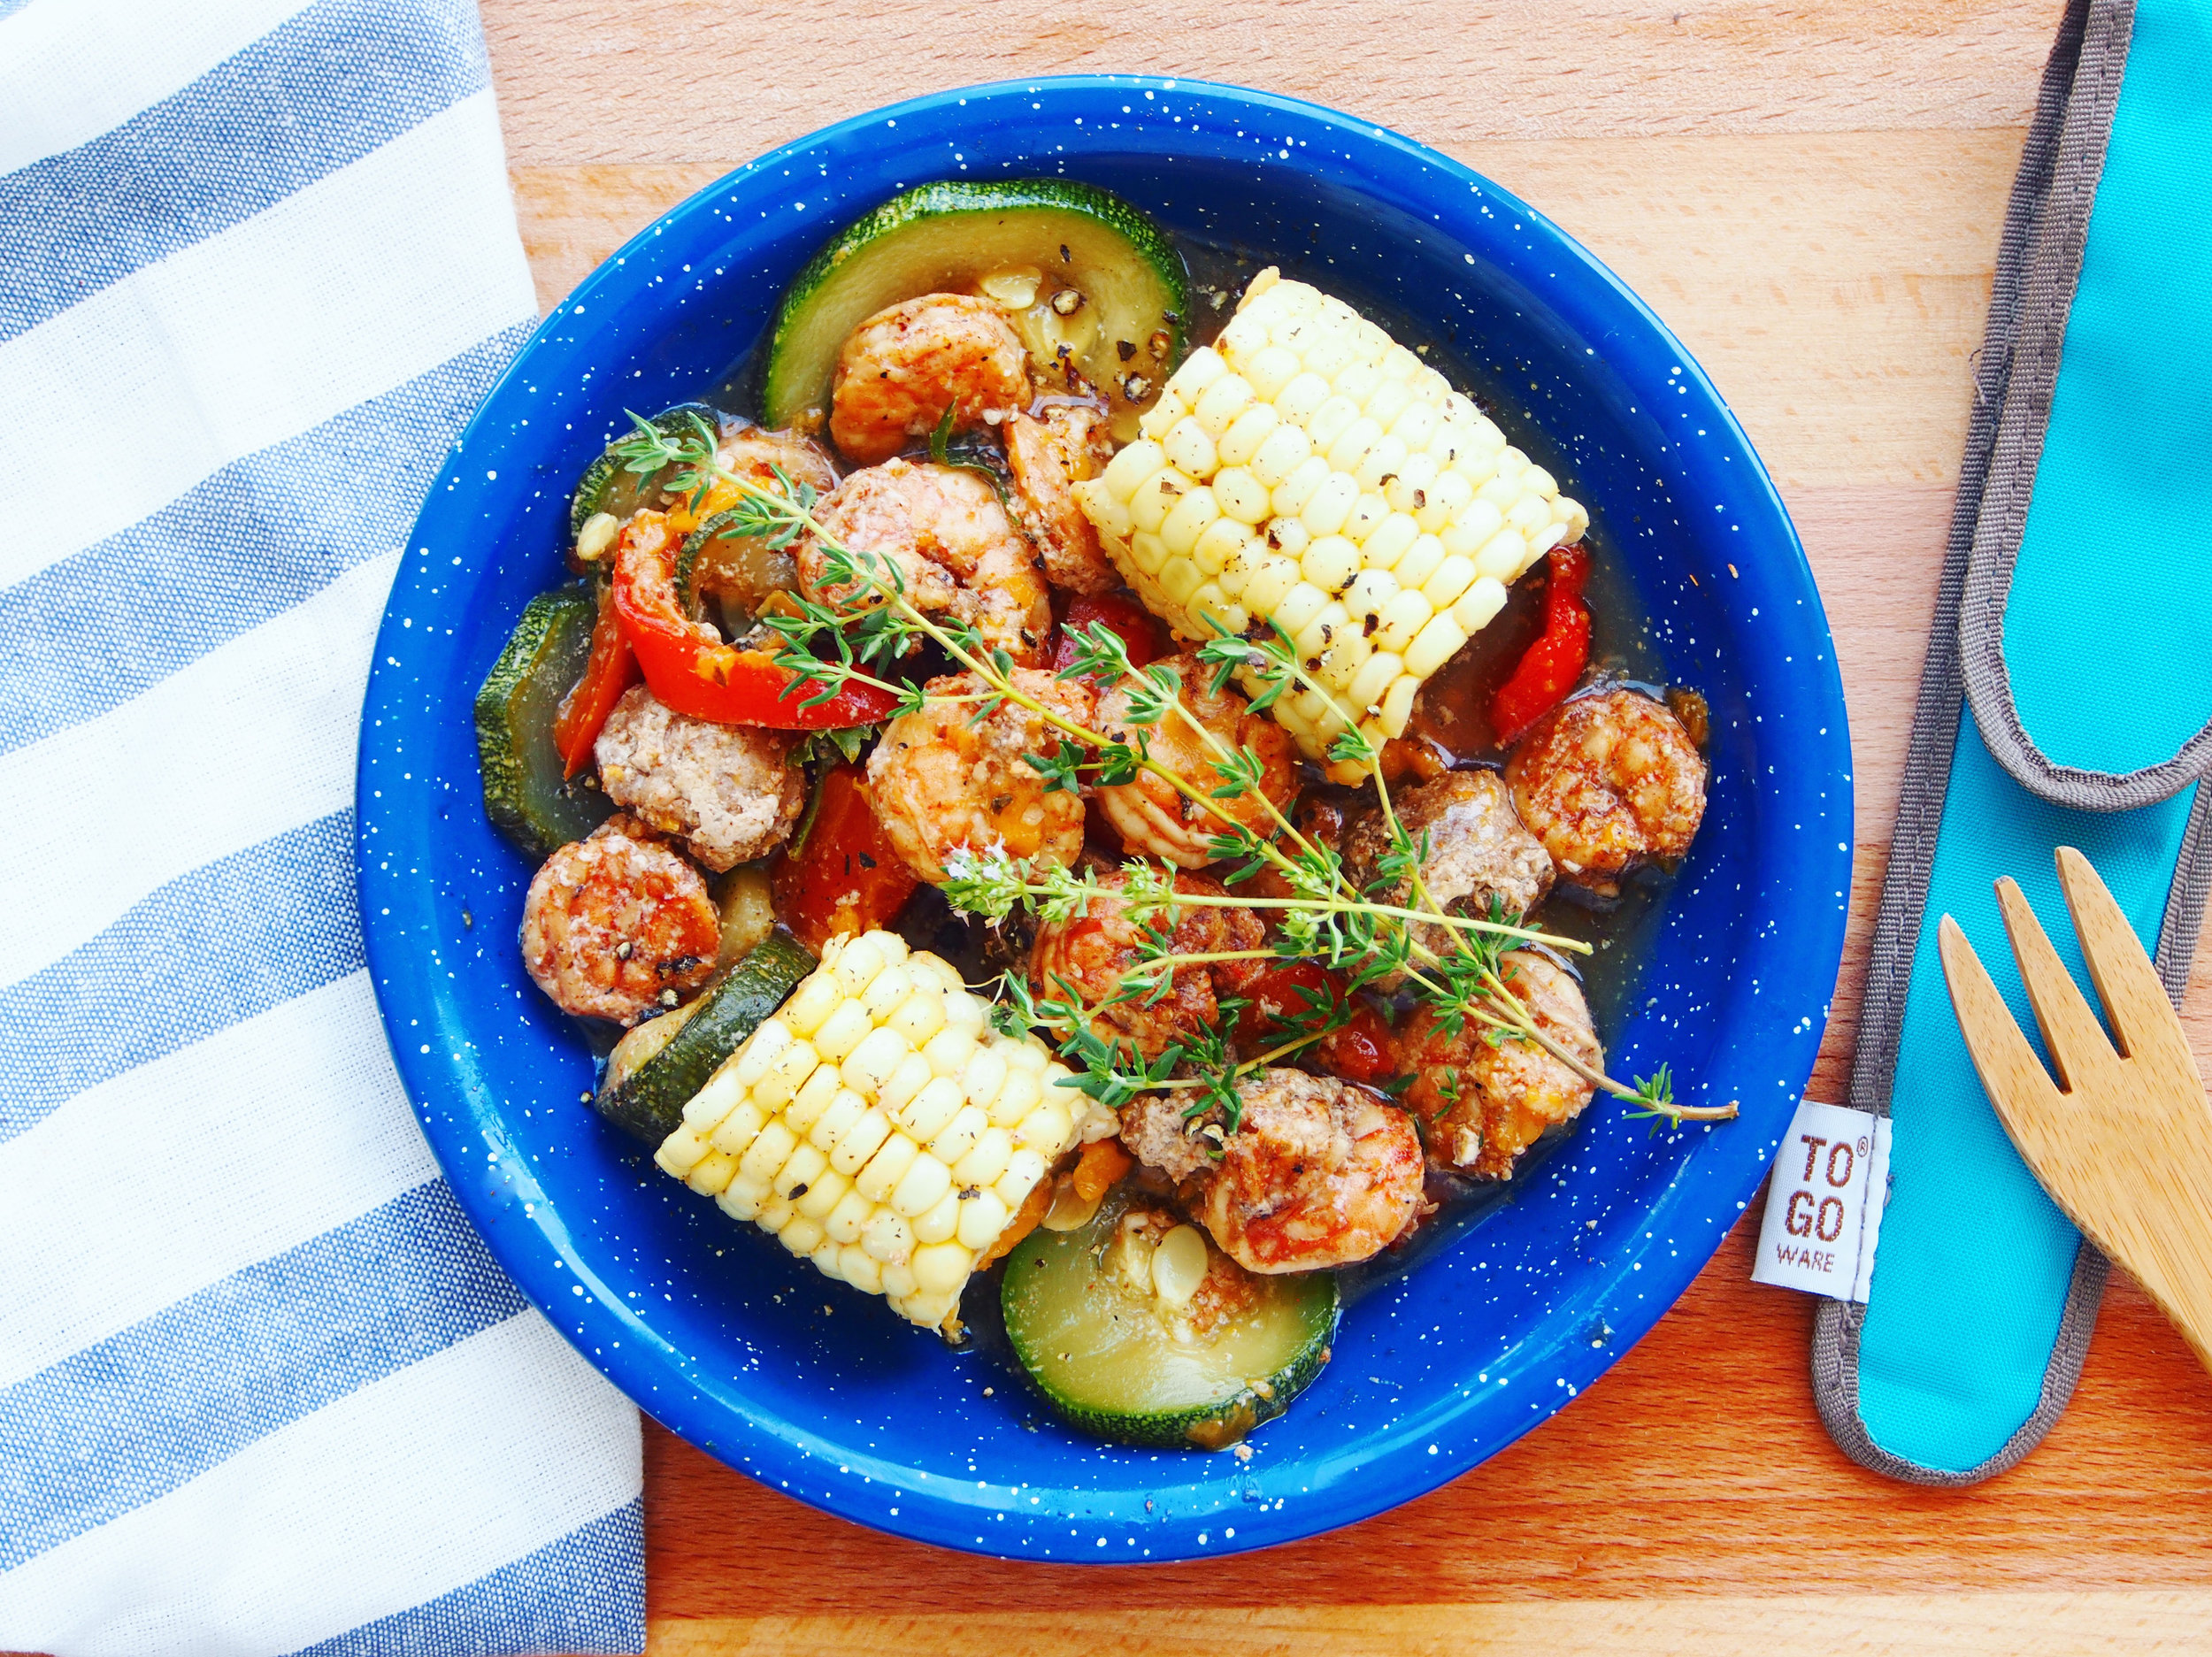 A foil packet meal with cajun shrimp, sausage, corn, and summer vegetables is a quick and easy recipe to celebrate summer! It's the best recipe for grilled shrimp with white wine and just enough of a spicy shrimp recipe to keep your tastebuds active!